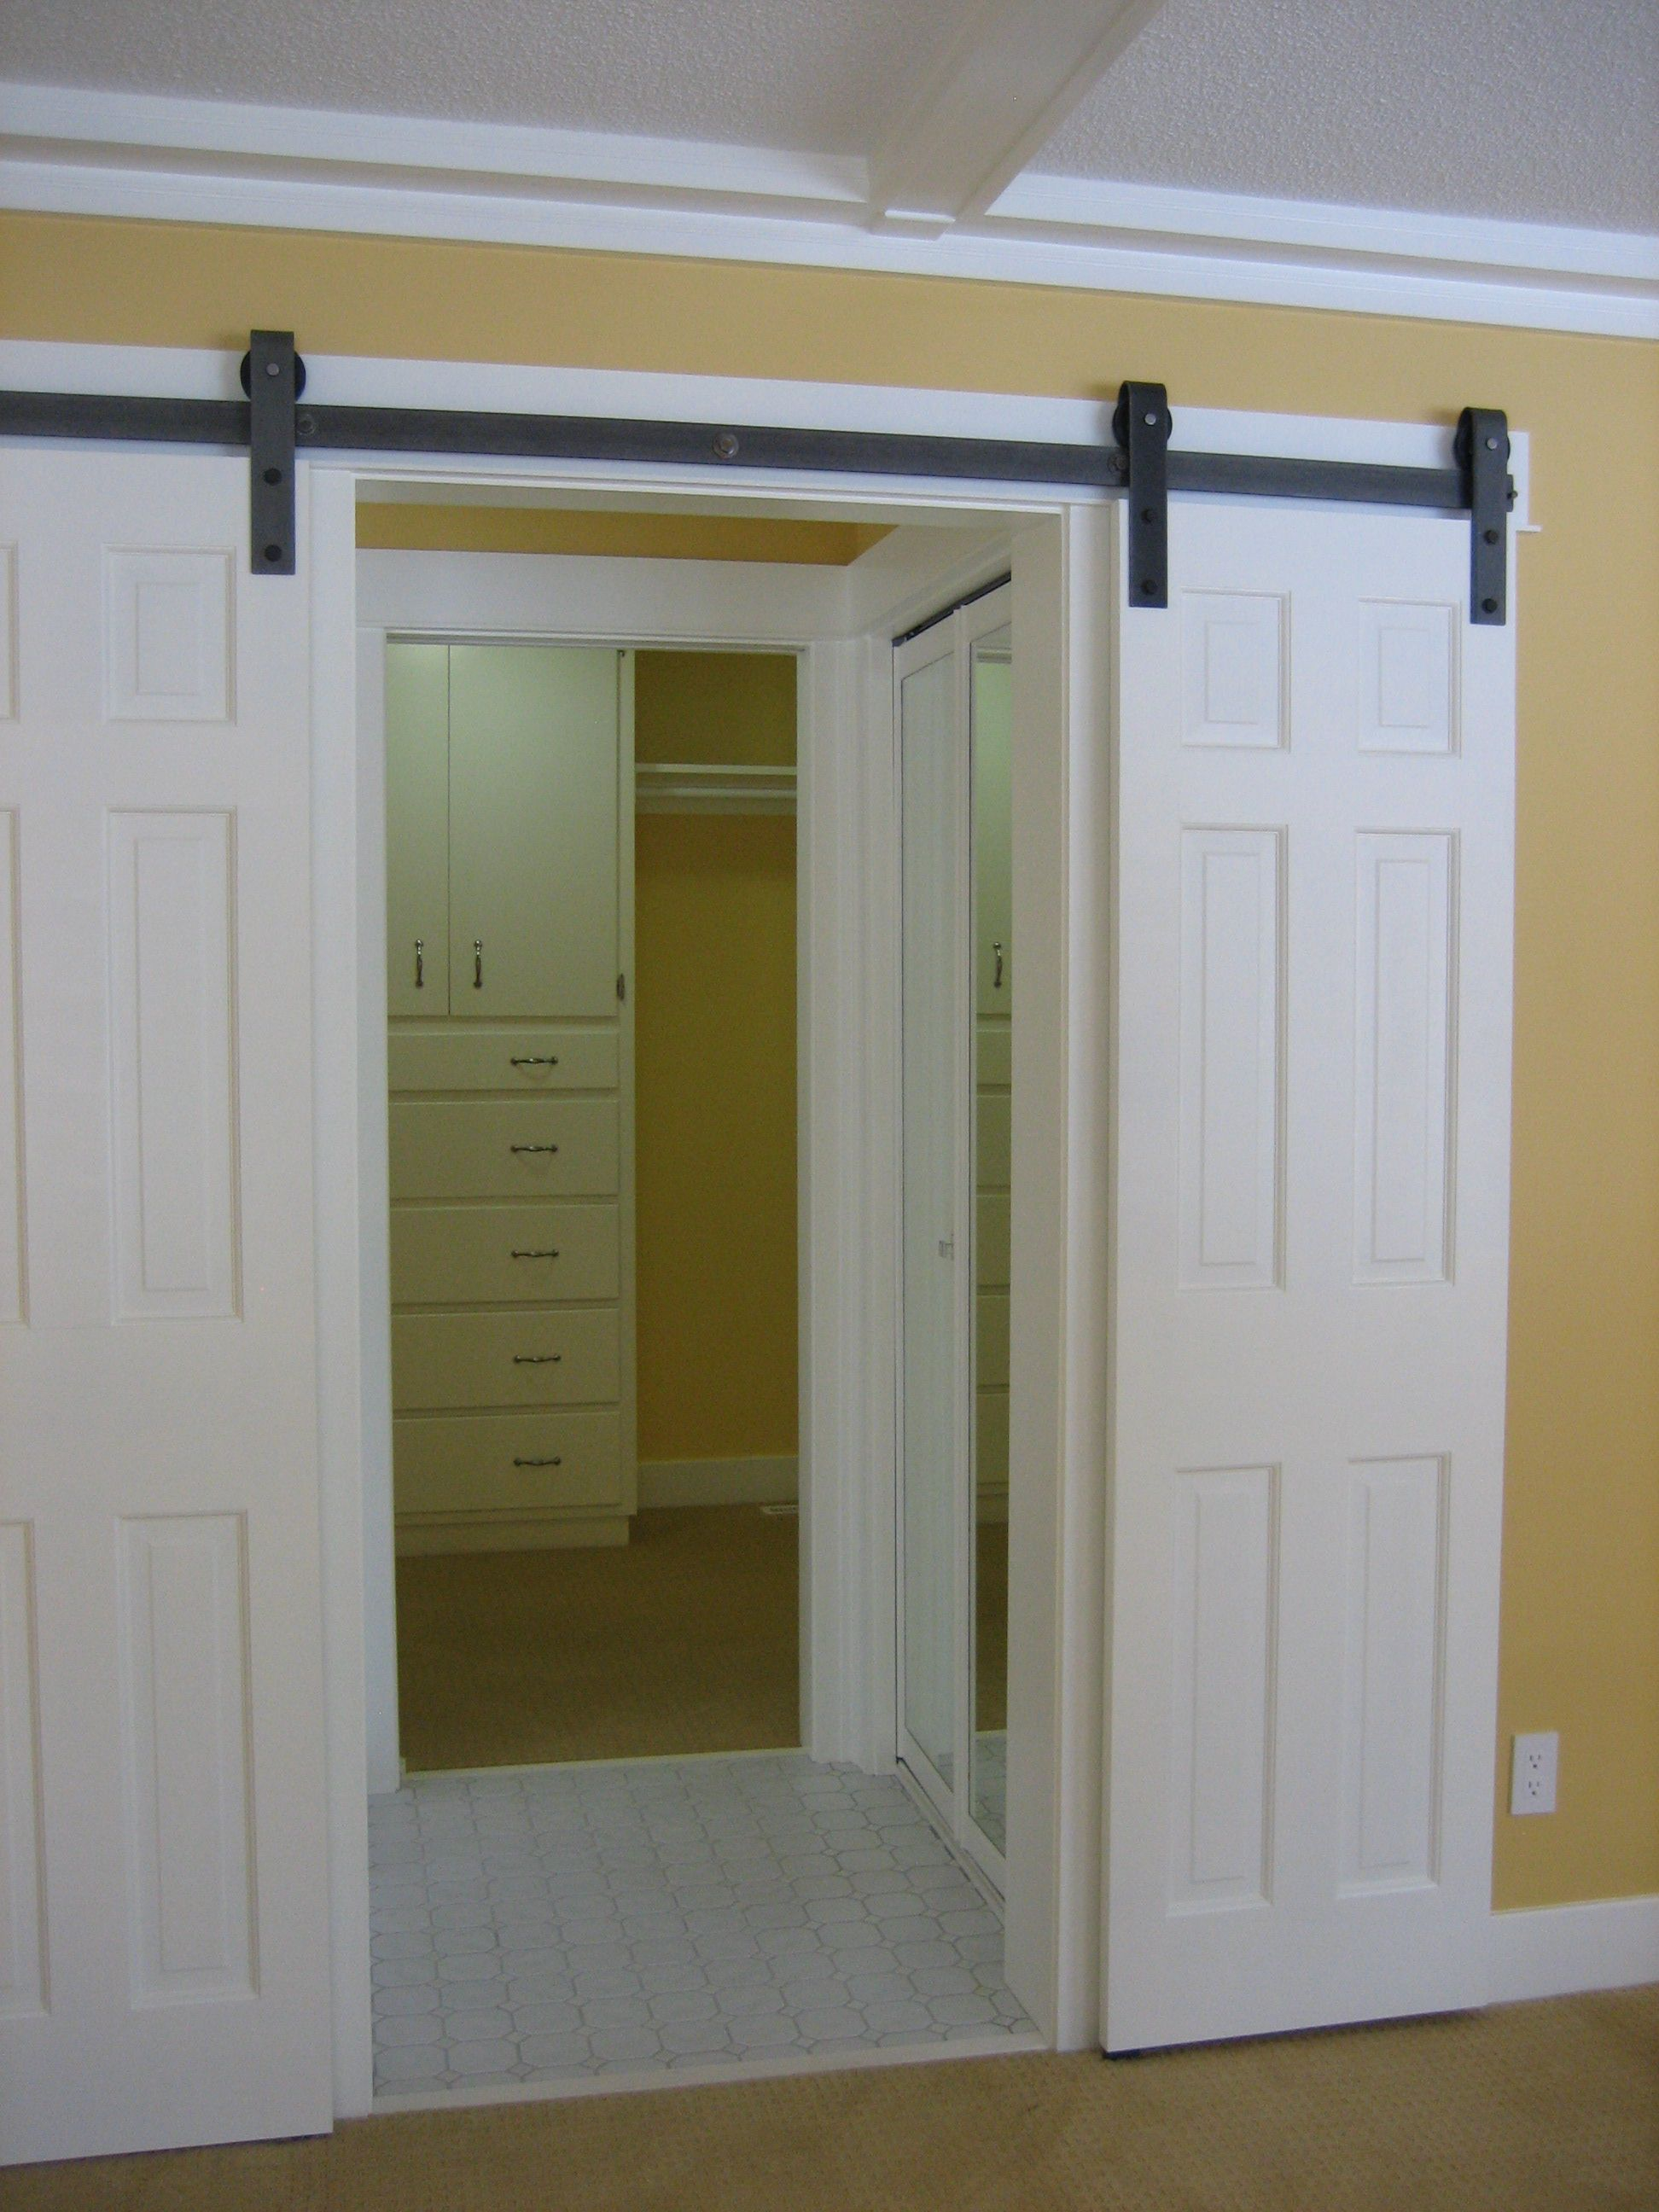 Hardware Source For Barn Door I Don T Like It With The White But Love This Type Of